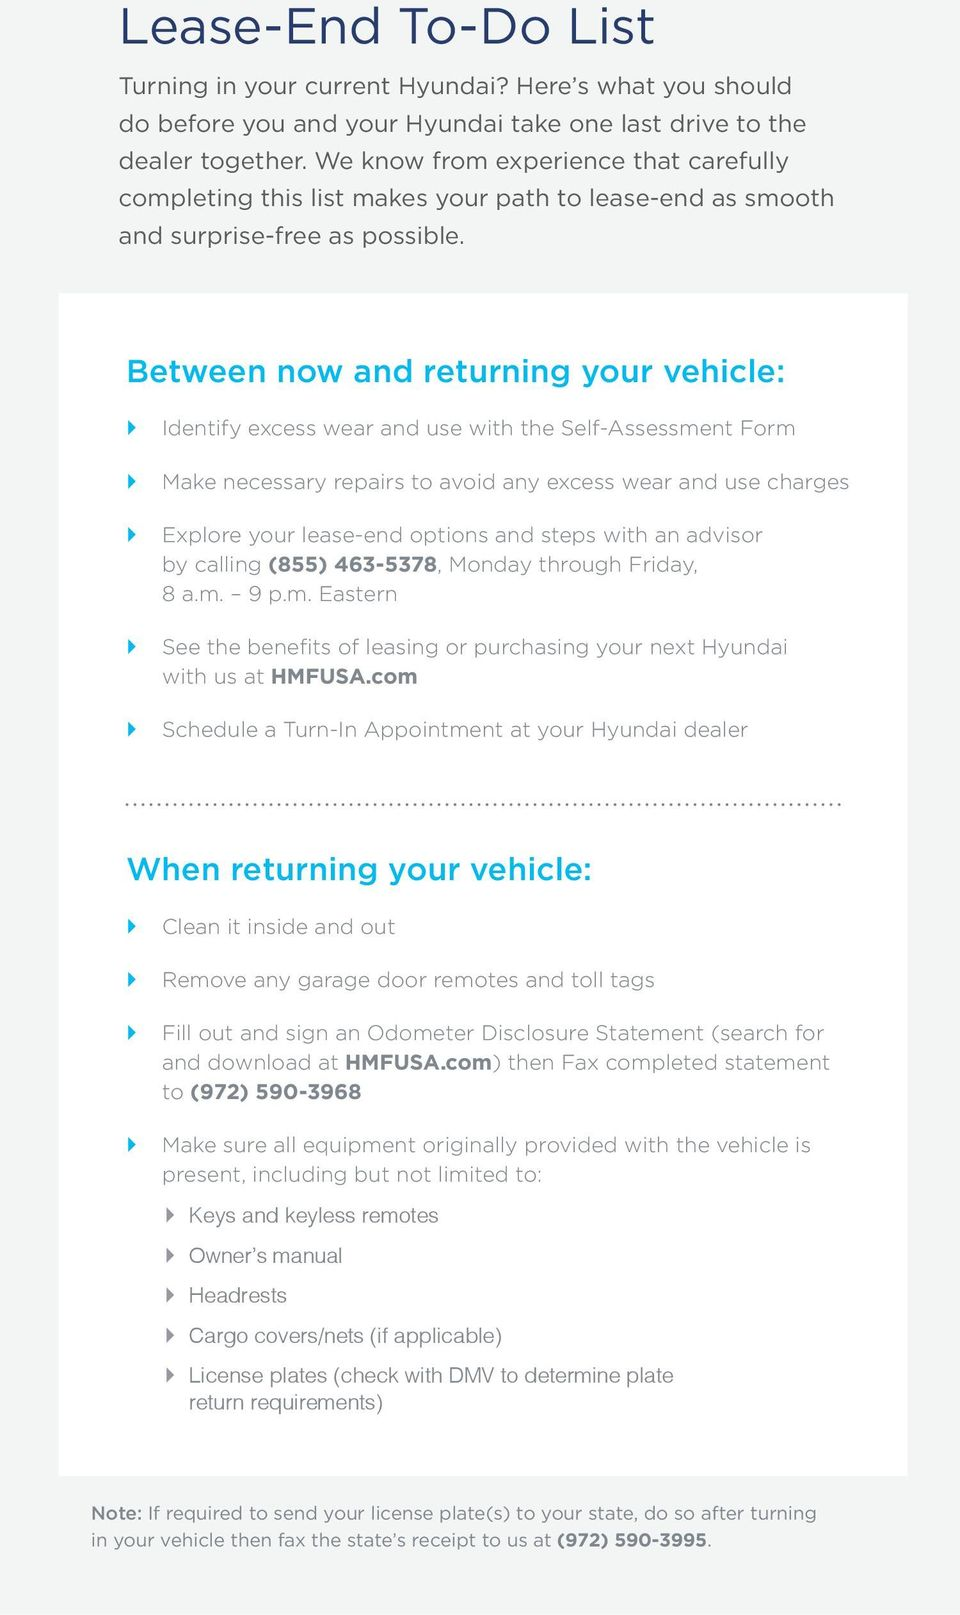 Between now and returning your vehicle: ` ` Identify excess wear and use with the Self-Assessment Form.